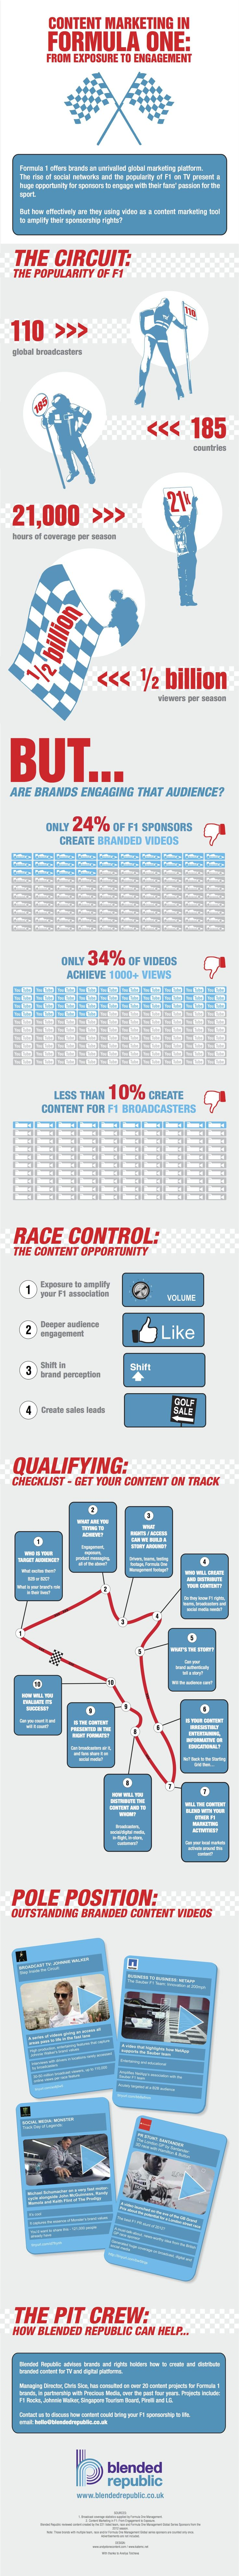 A Missed Opportunity For F1 Sponsors [Infographic]